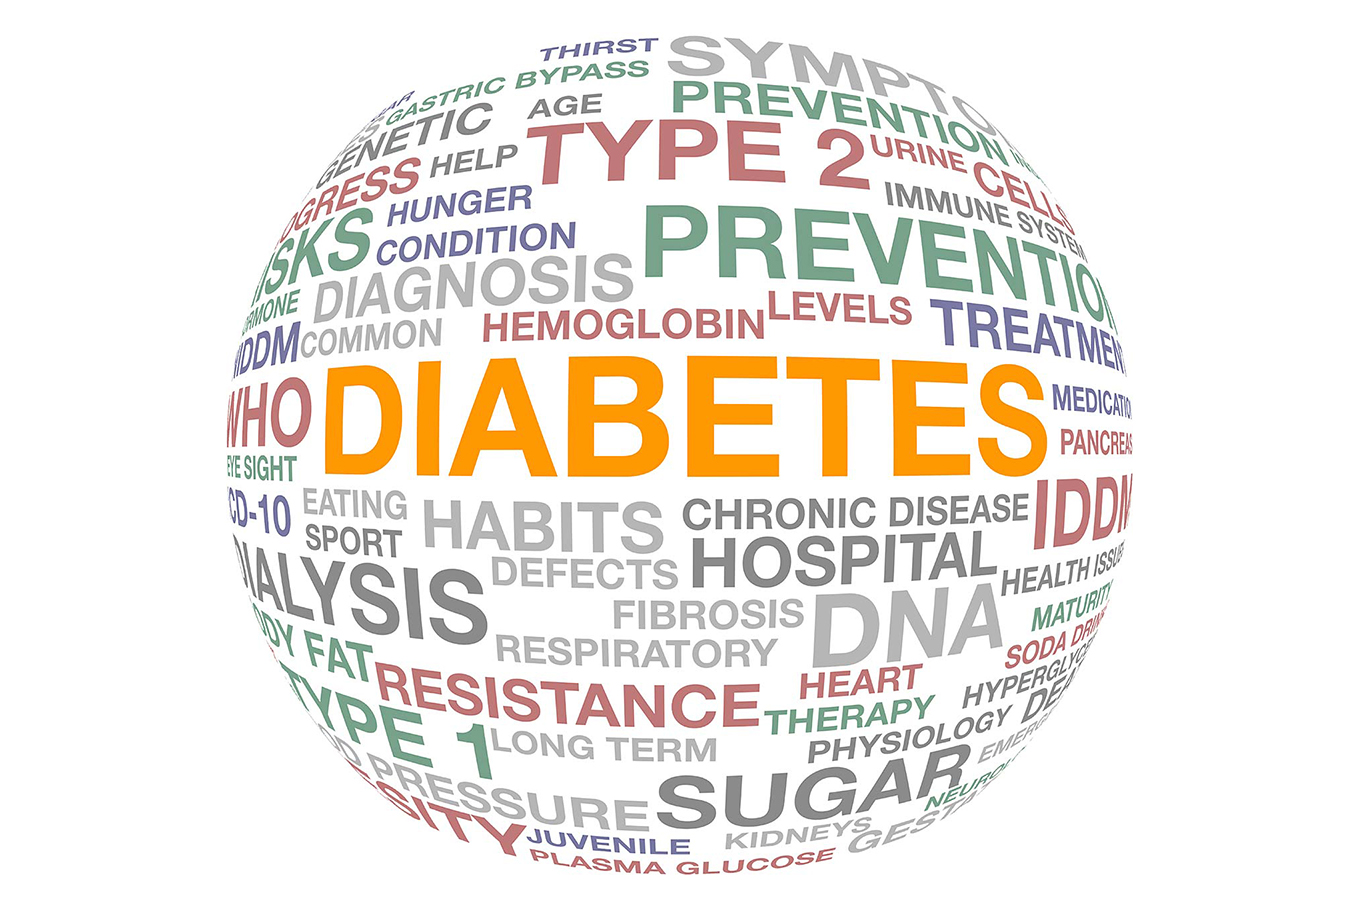 Are You At Risk for Diabetes?